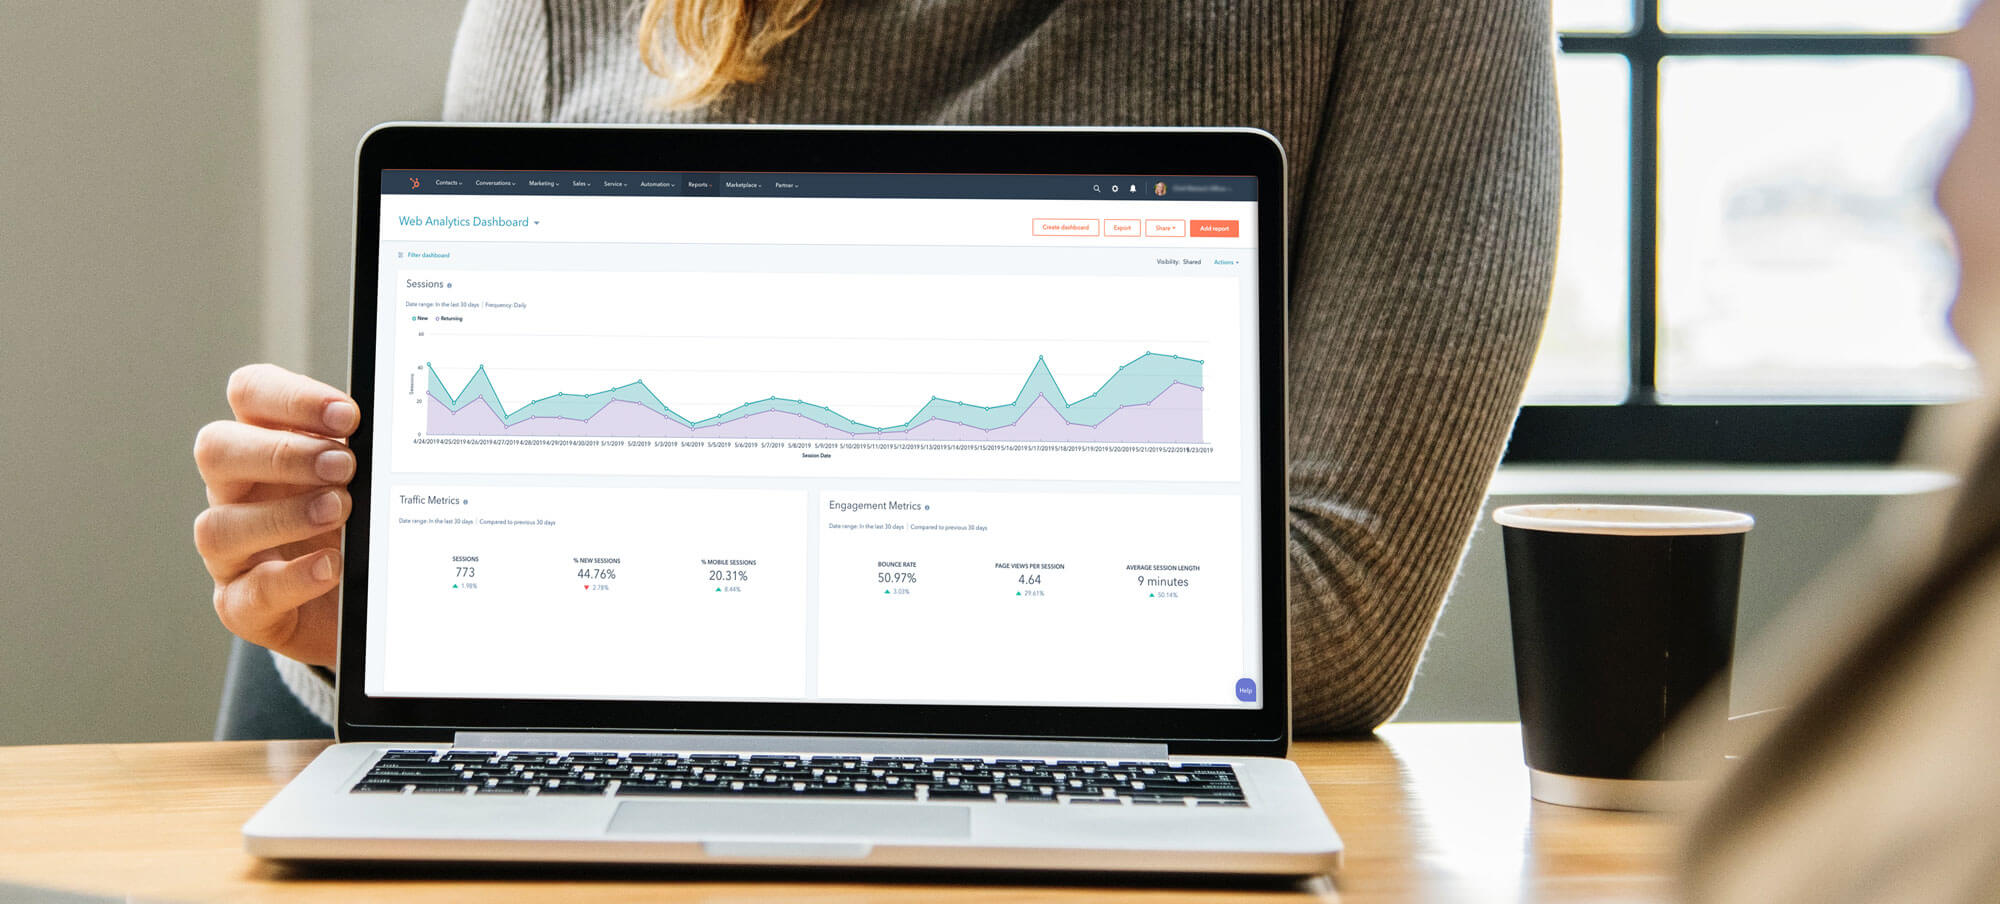 hubspot-consultant-laptop-dashboard